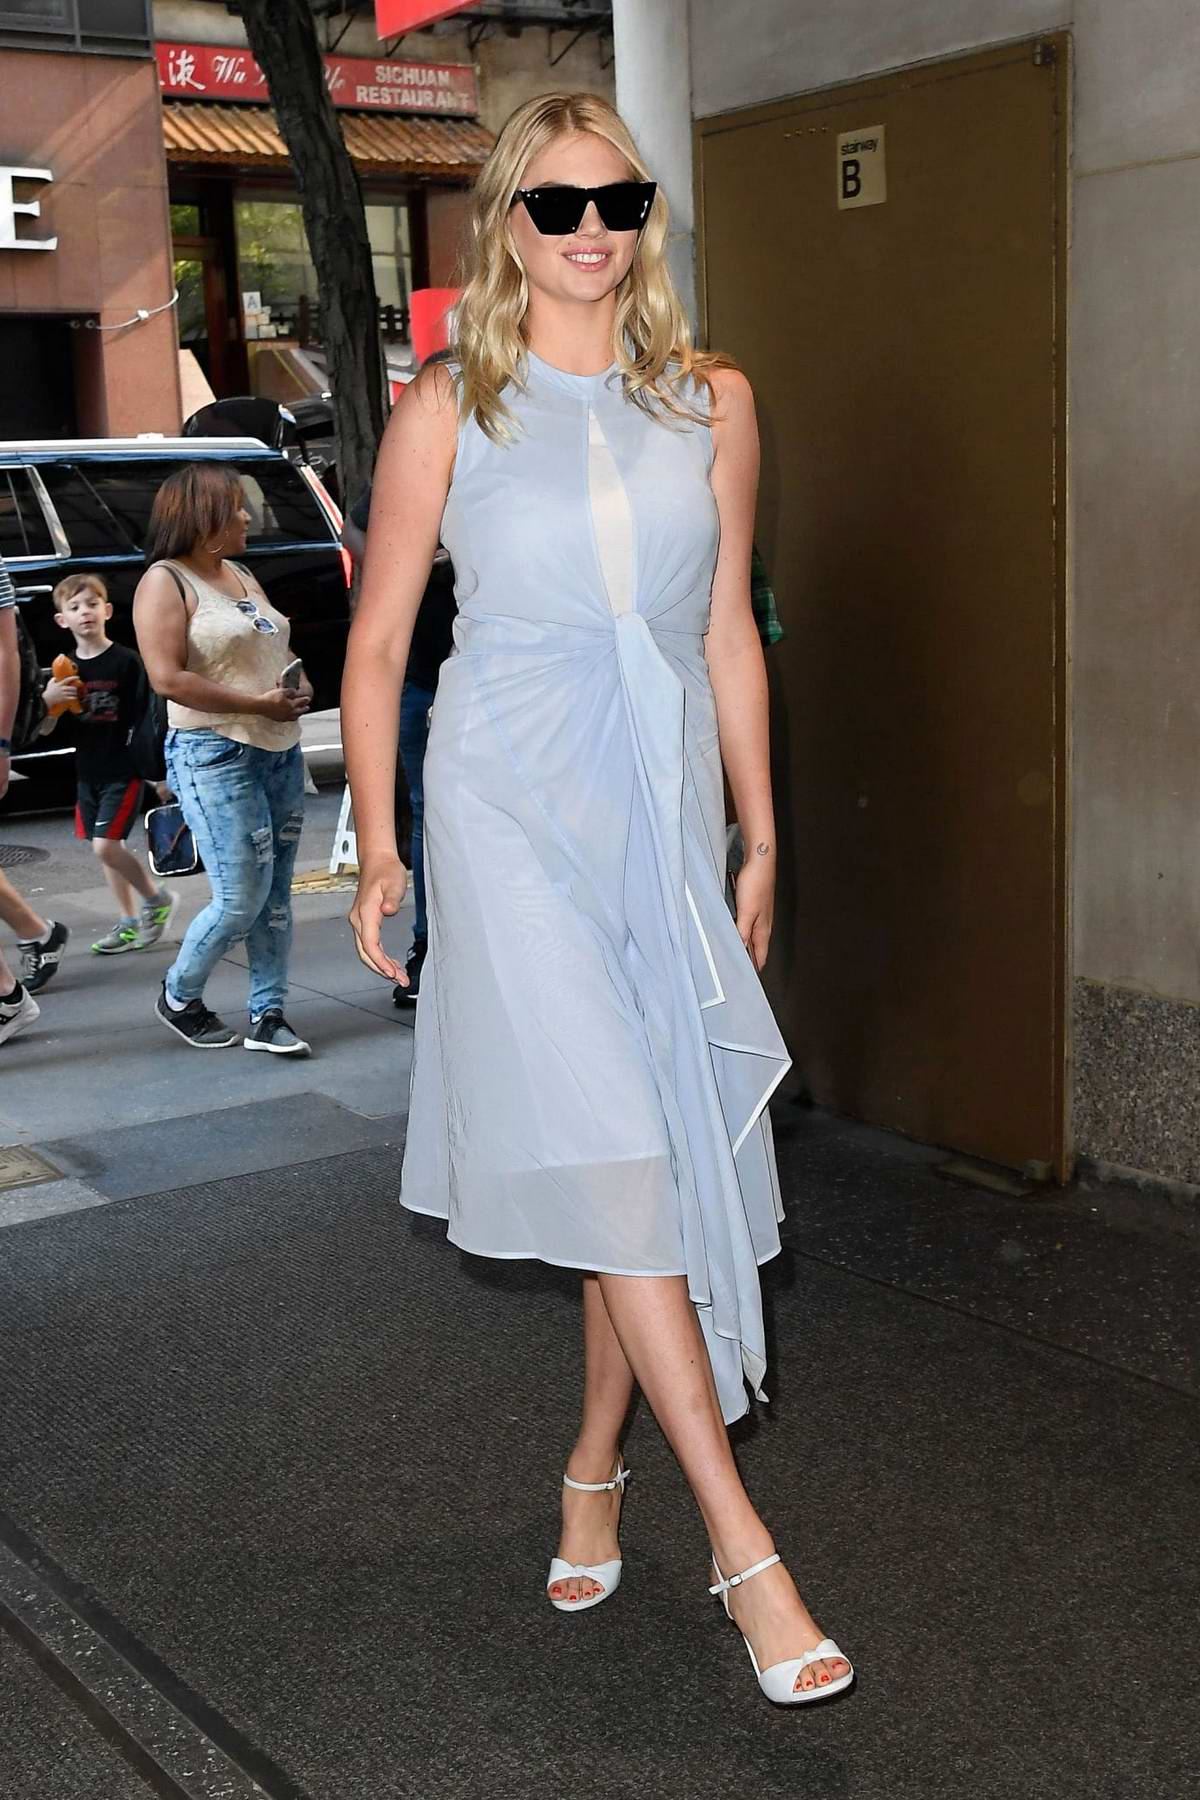 Kate Upton looks great in a light blue dress as she arrives at the 'Today' Show in New York City